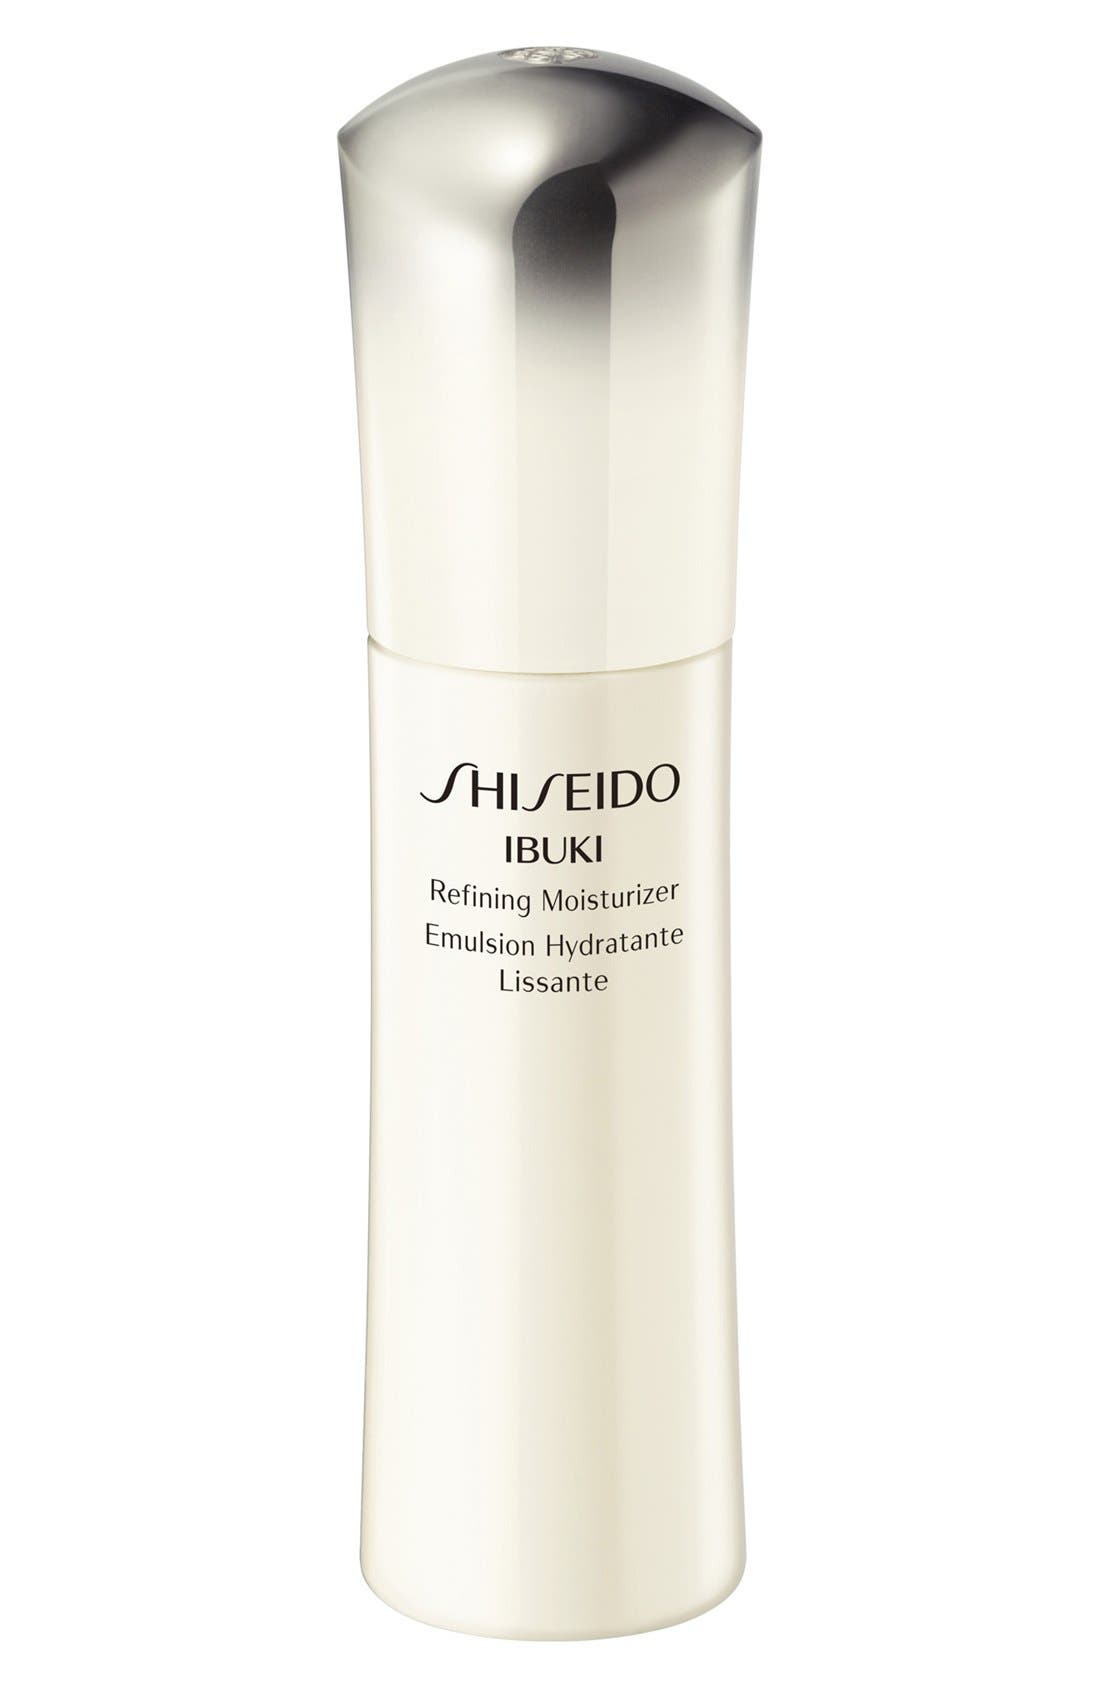 'Ibuki' Refining Moisturizer,                             Main thumbnail 1, color,                             NO COLOR